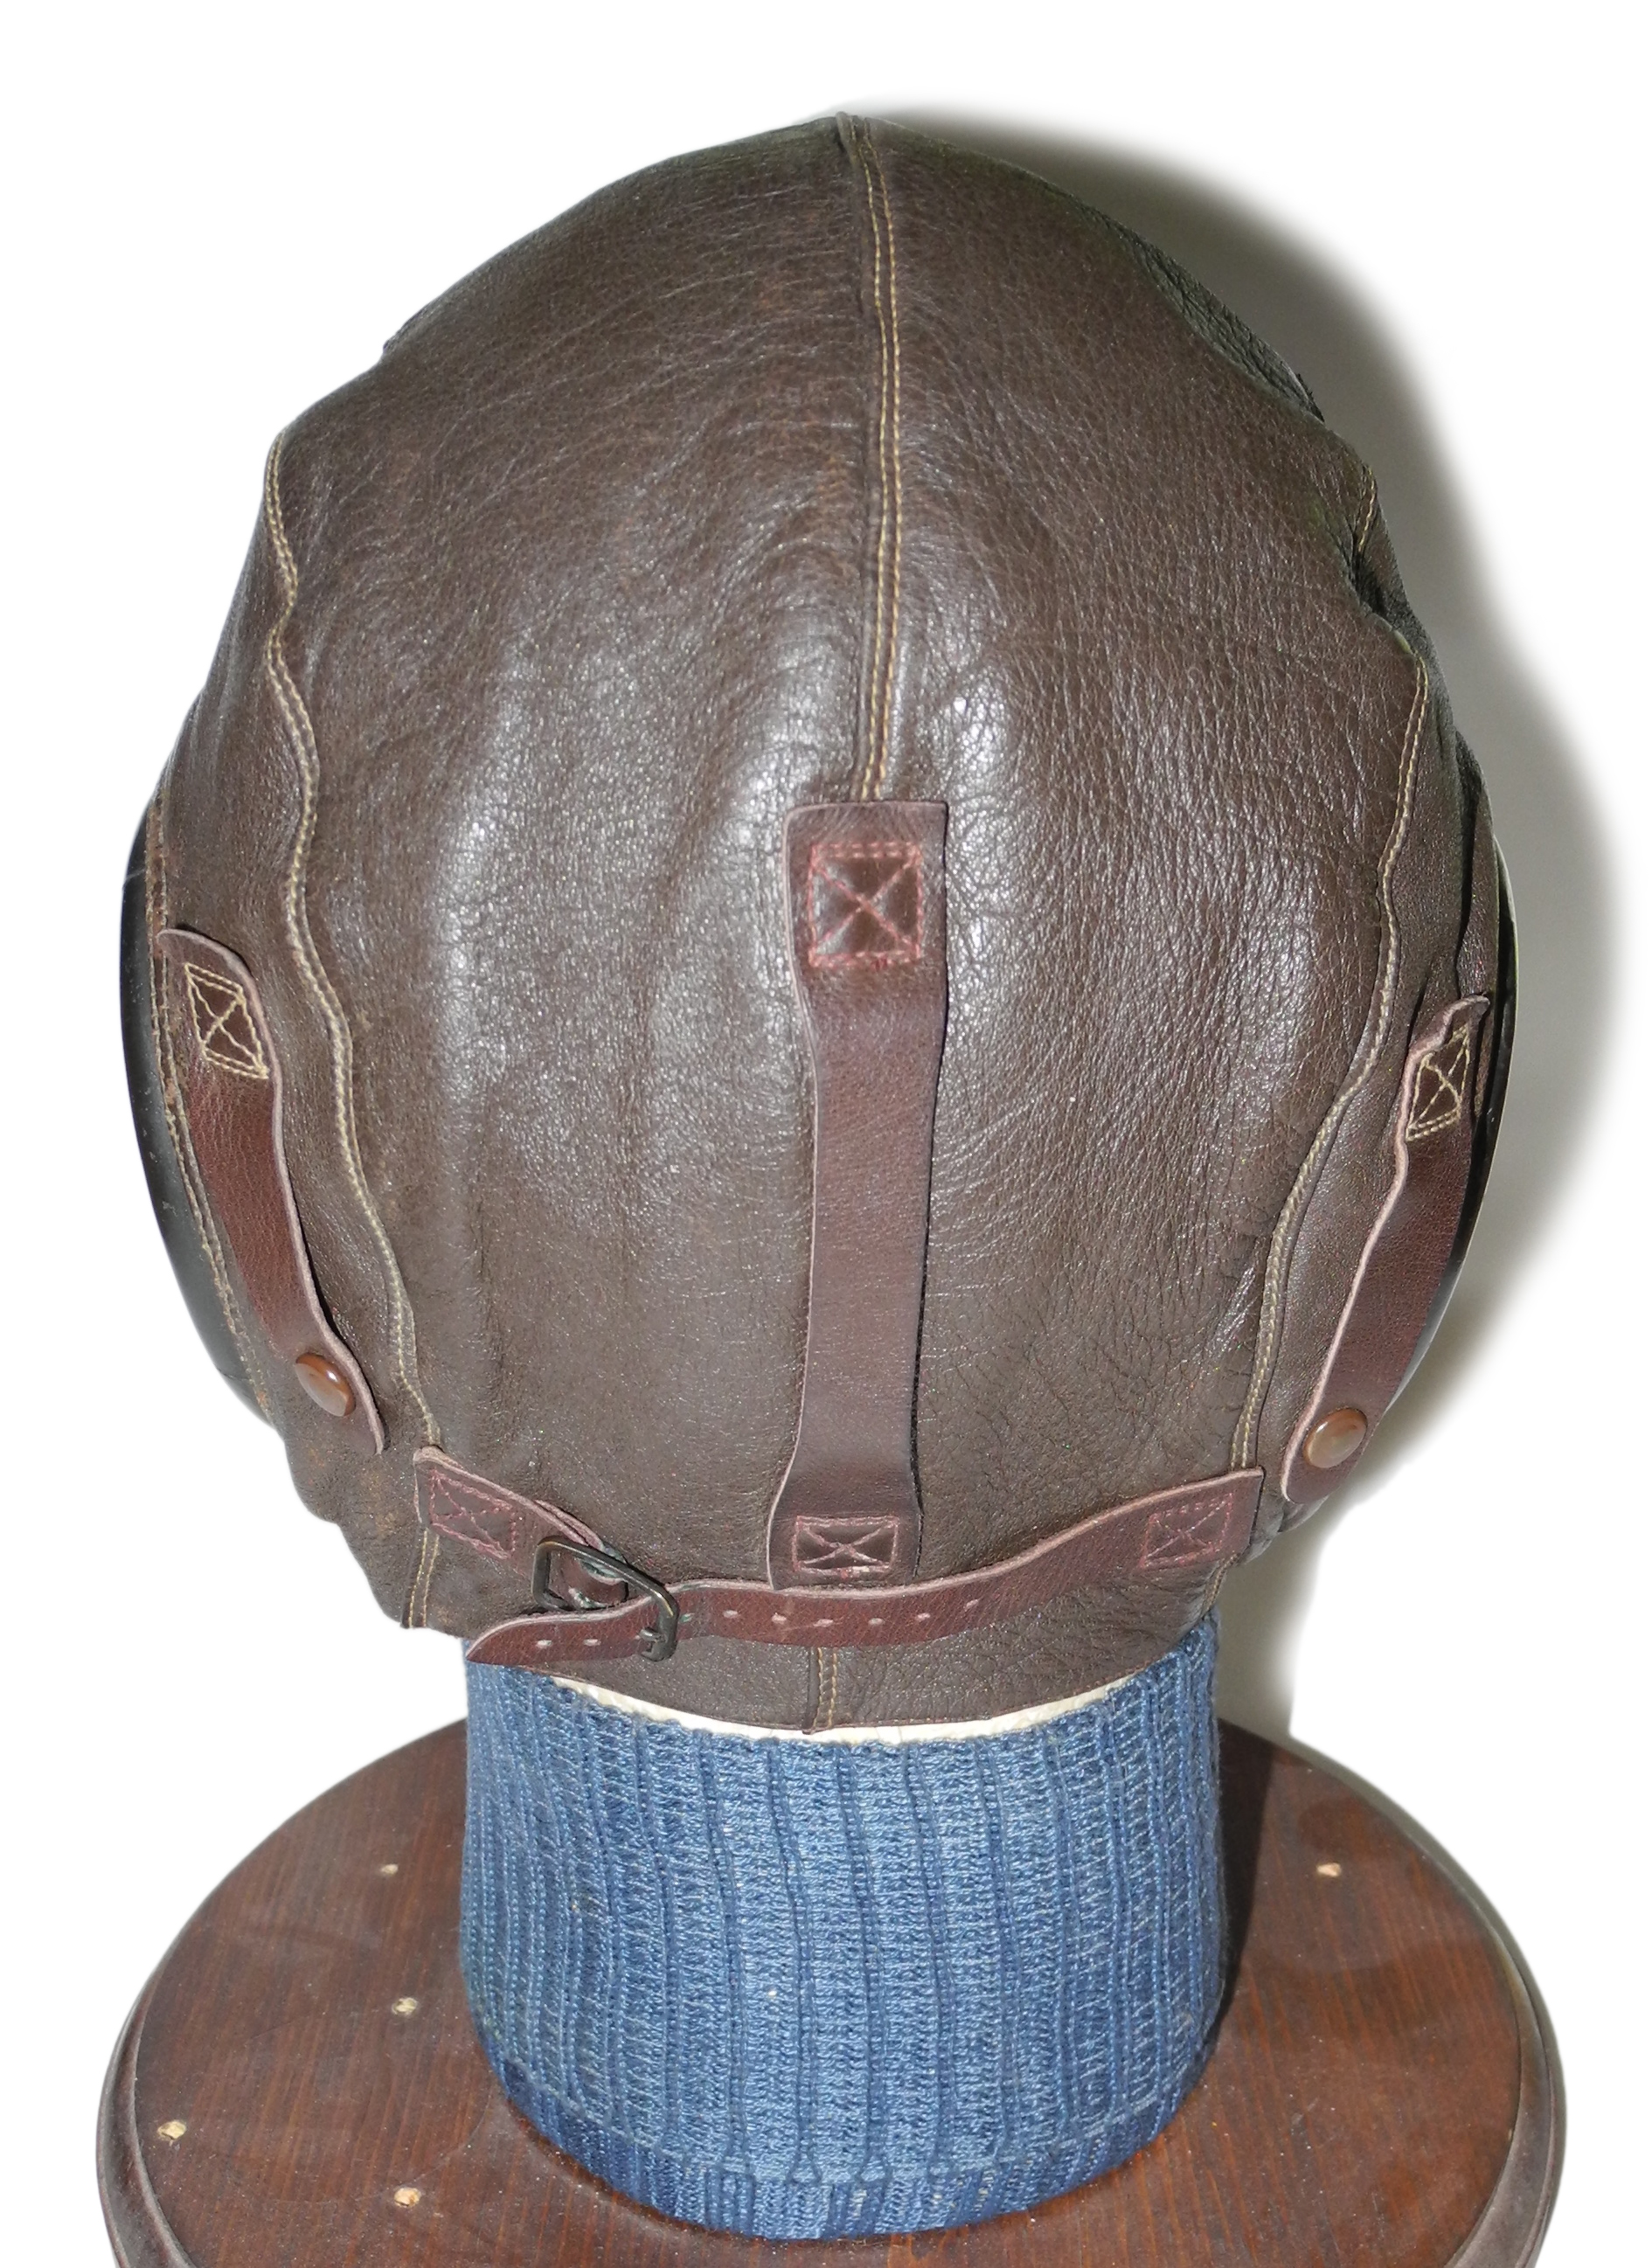 AAF Type A-11 flying helmet